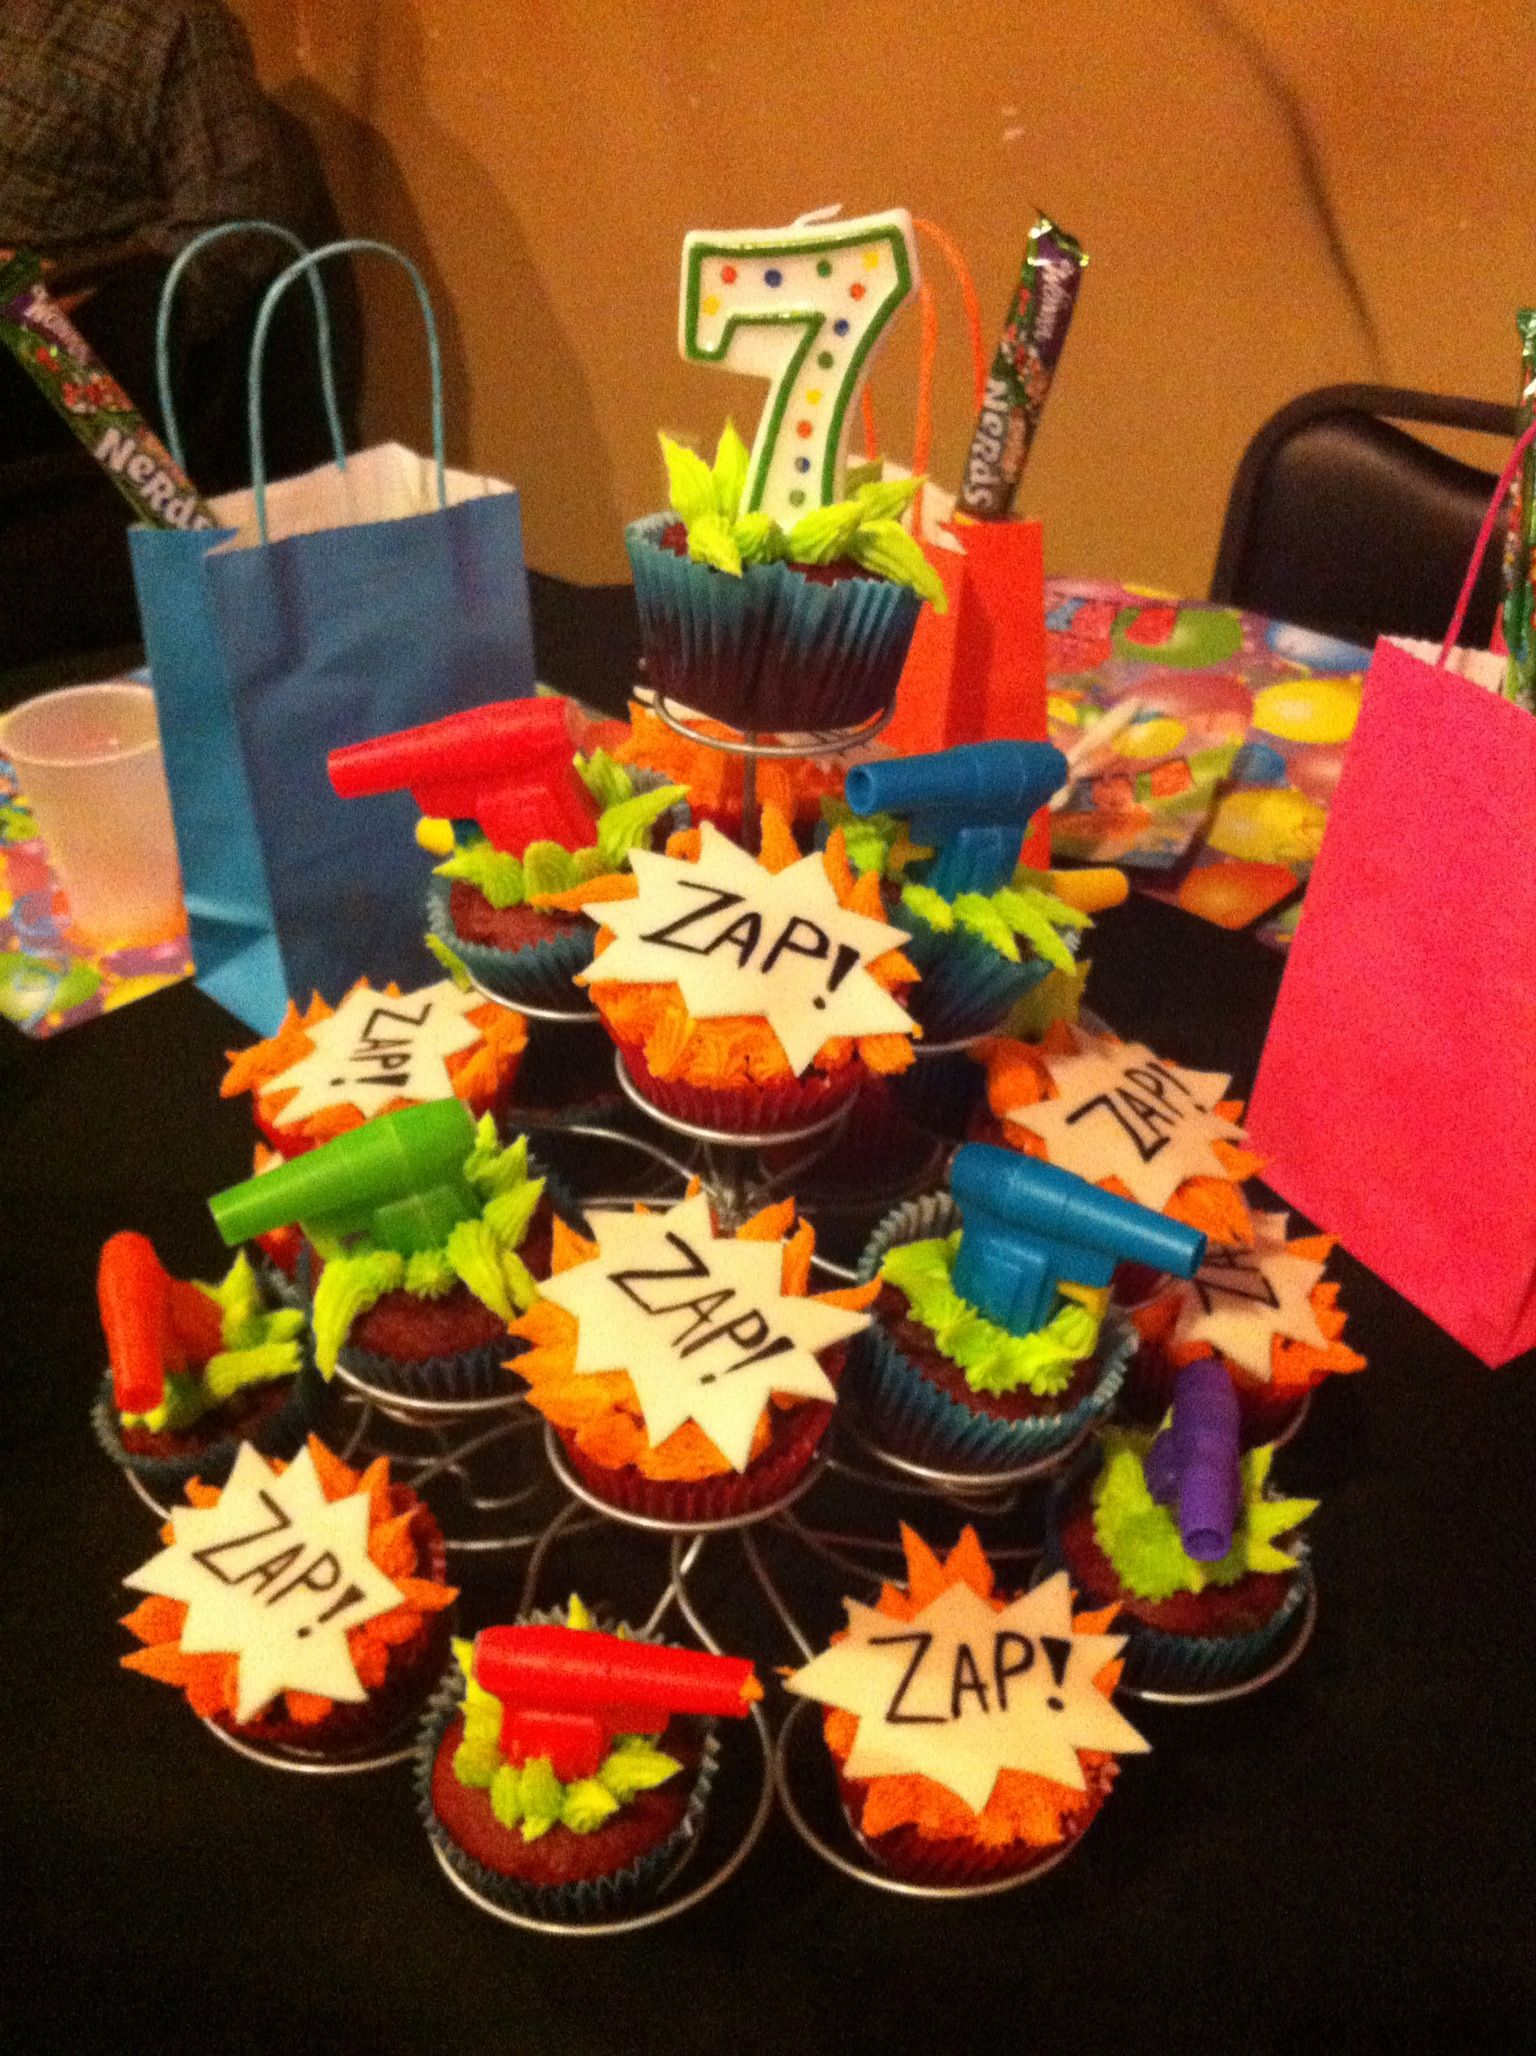 Laser tag cupcakes I made this Pinterest Laser tag party